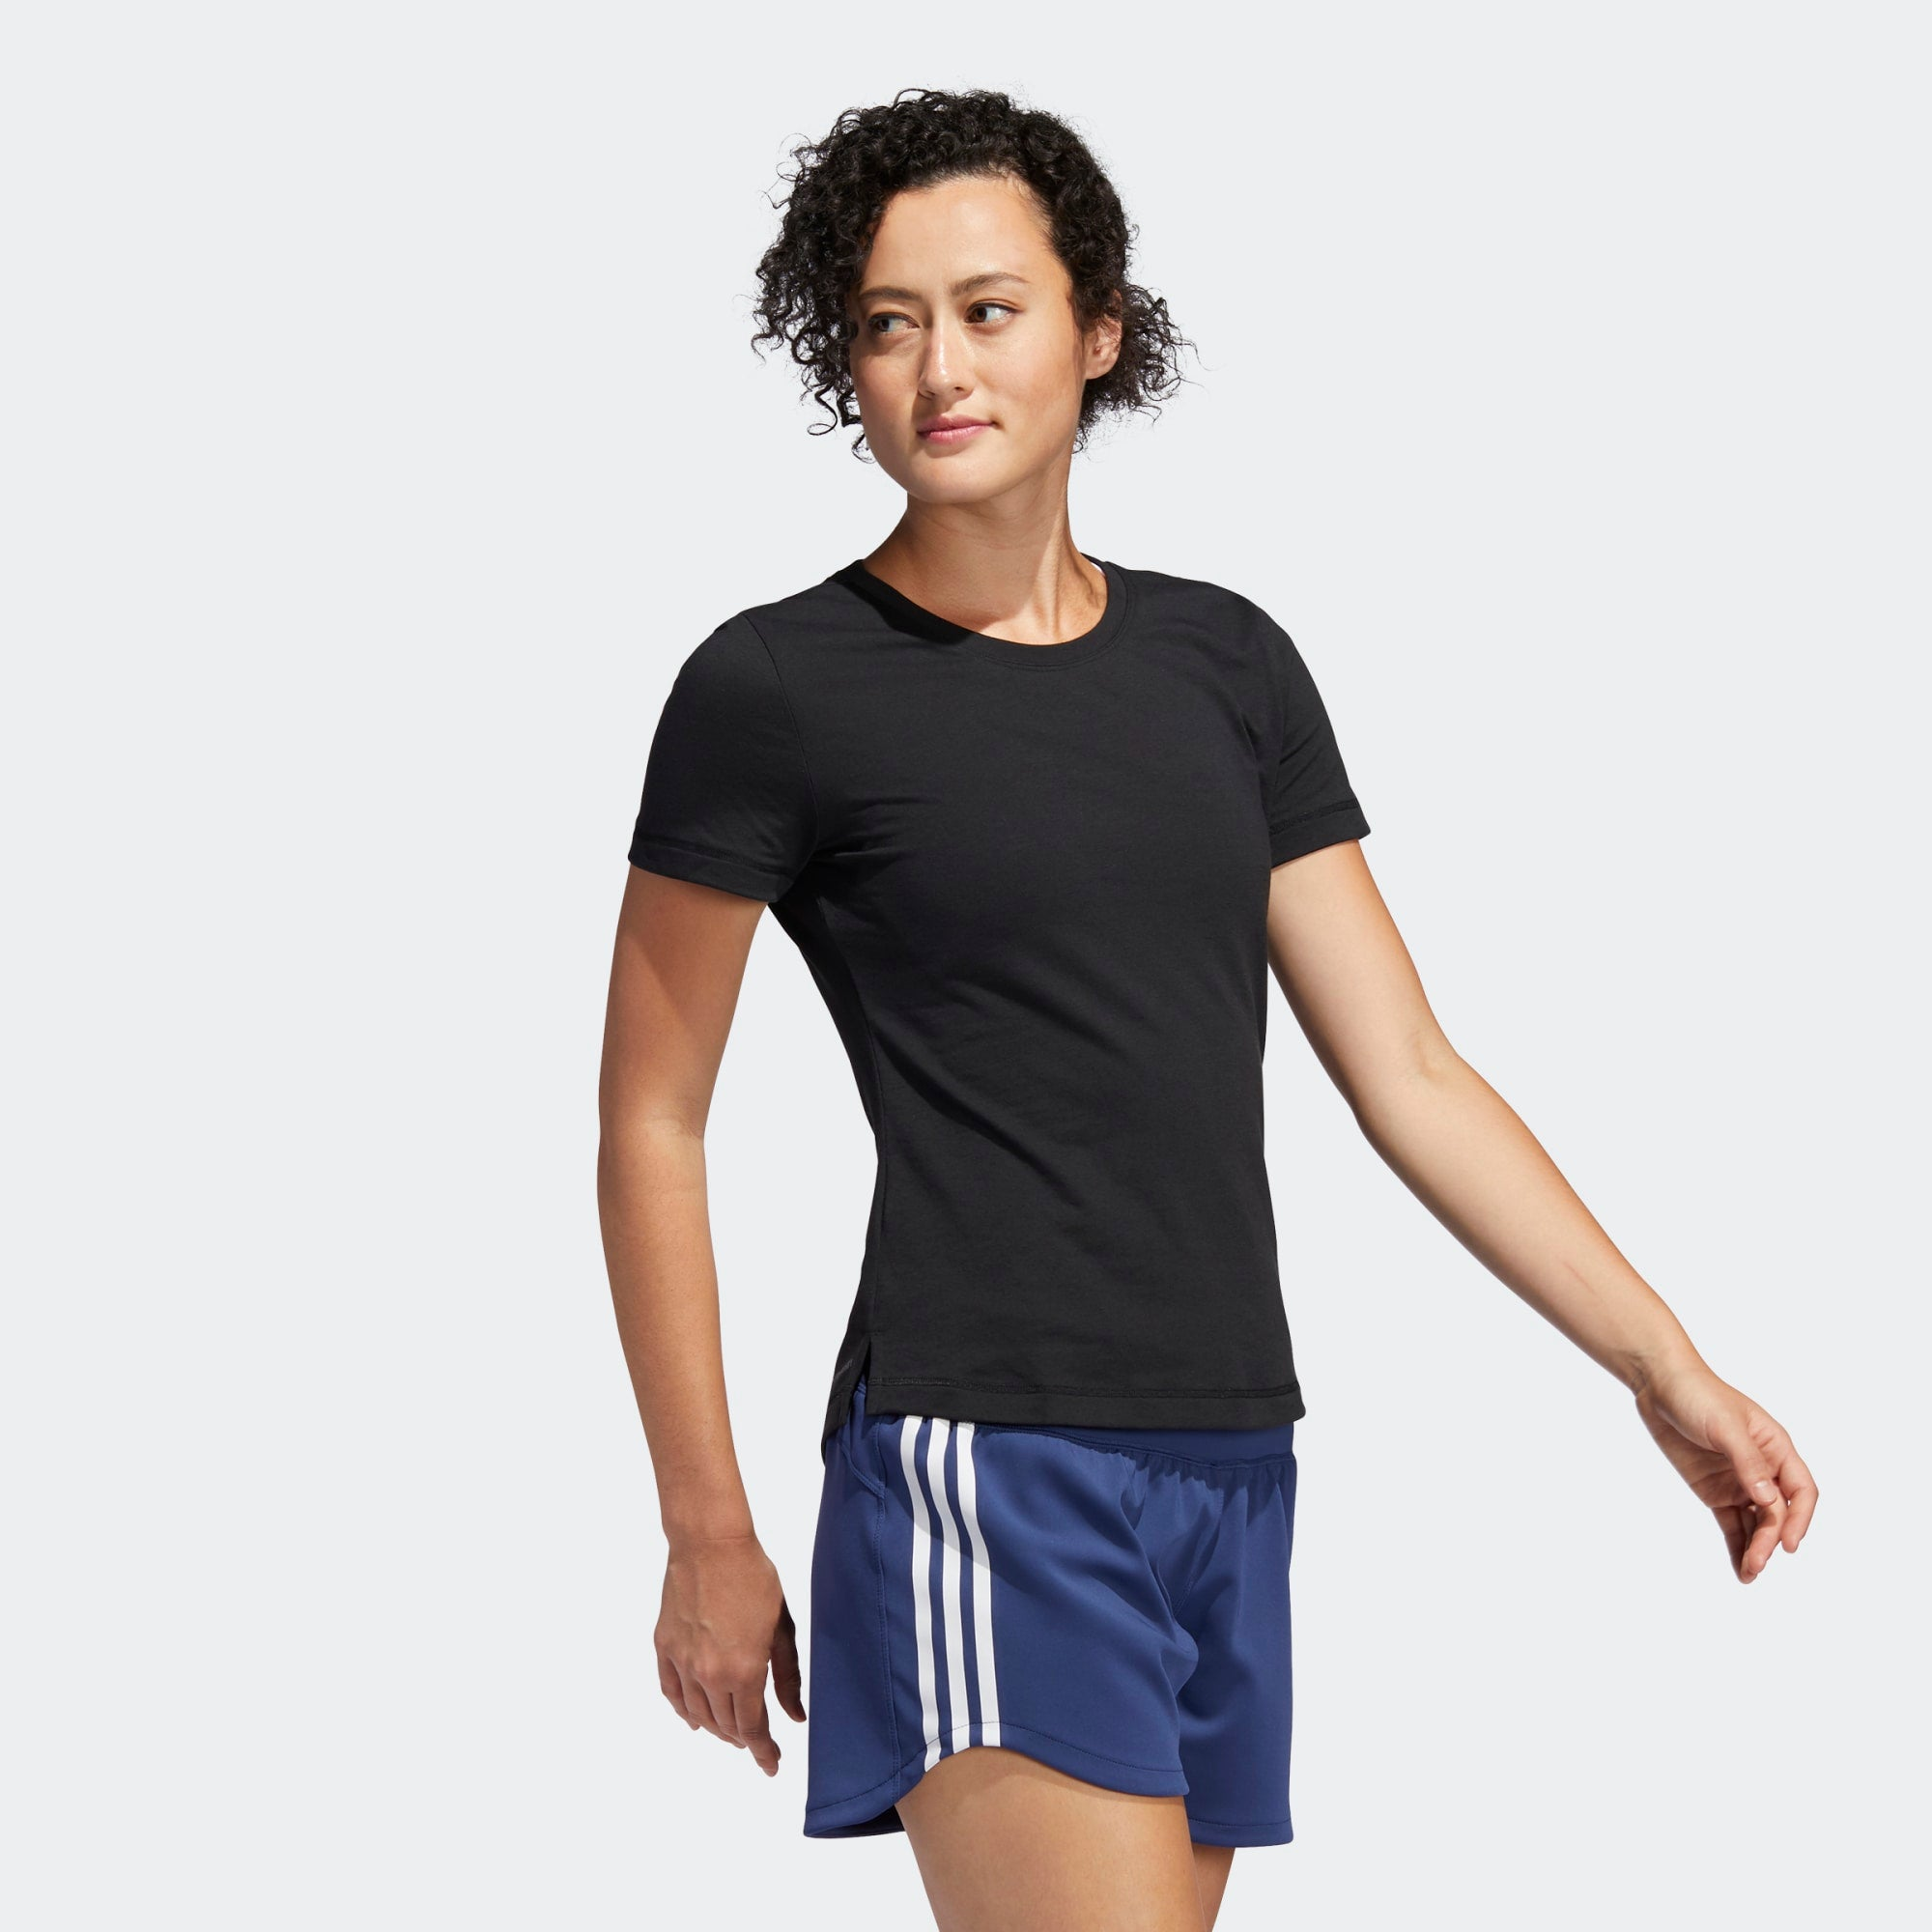 Adidas Womens Prime Tee - Black/White